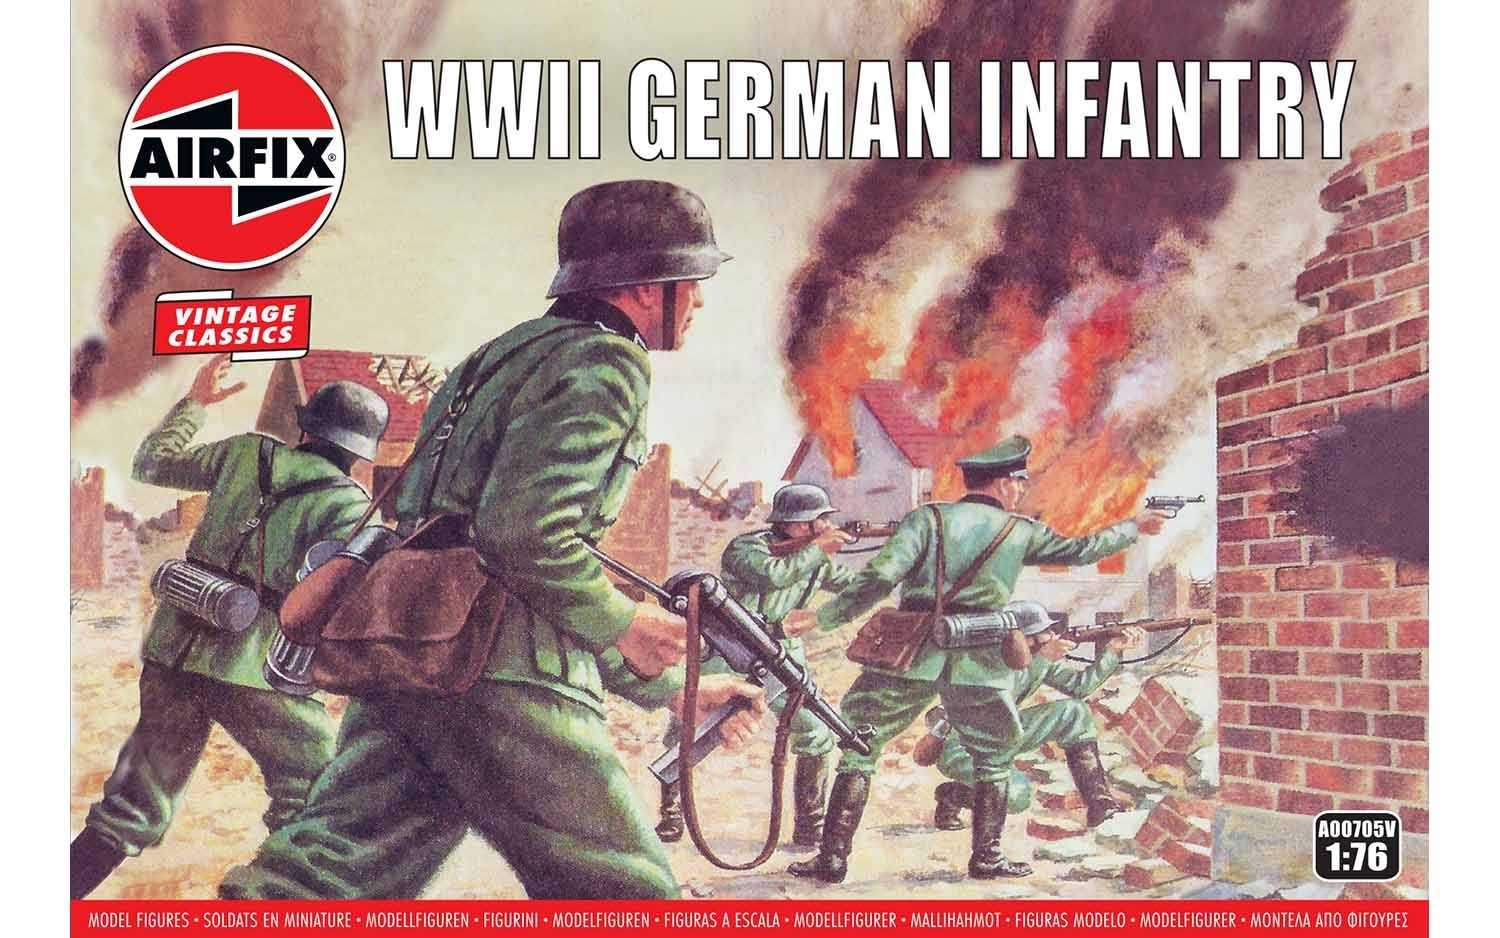 1:76 WWII German Infantry (Classic Kit VINTAGE Military)